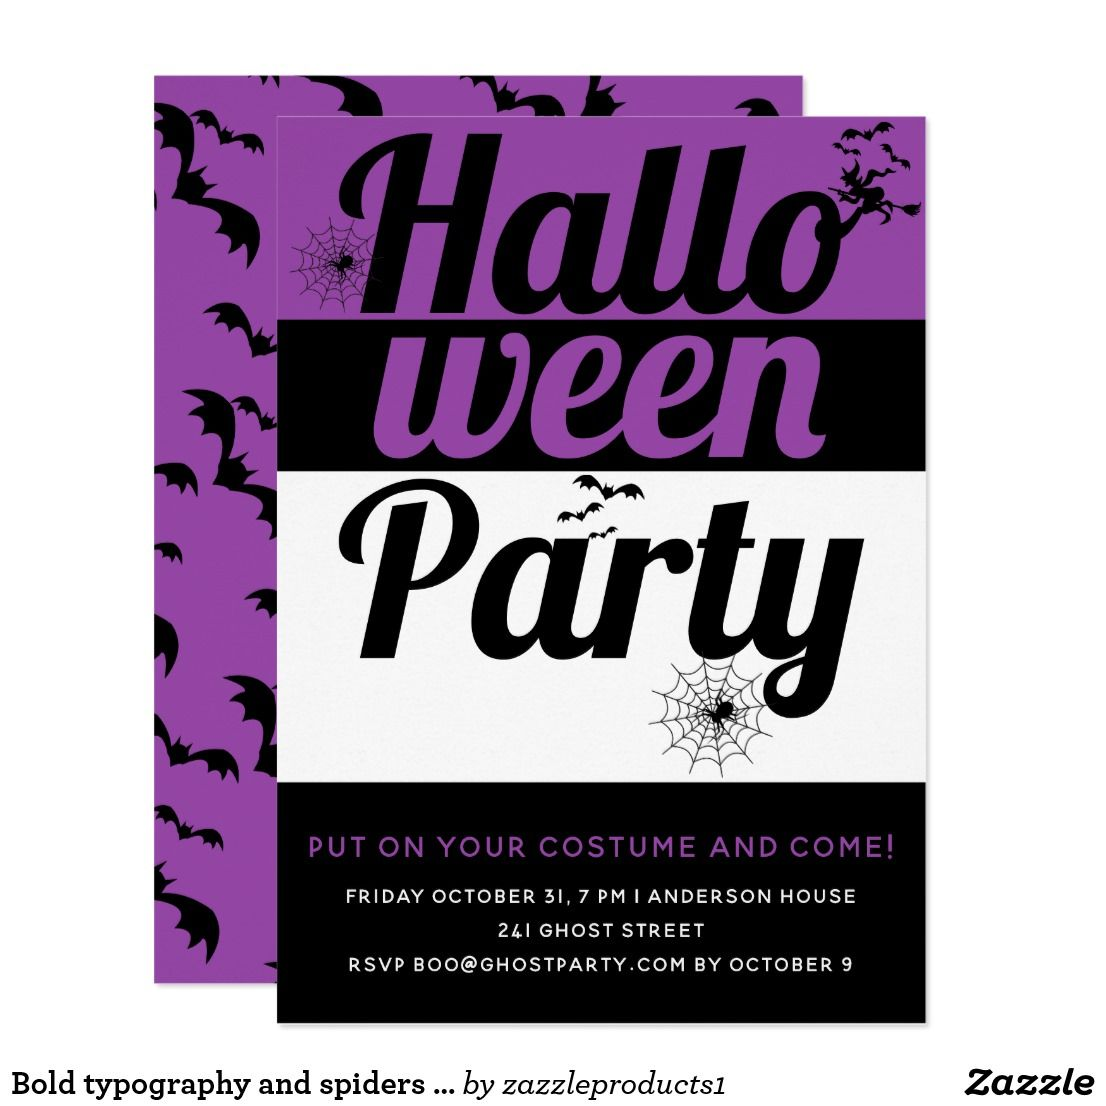 Bold typography and spiders purple halloween party